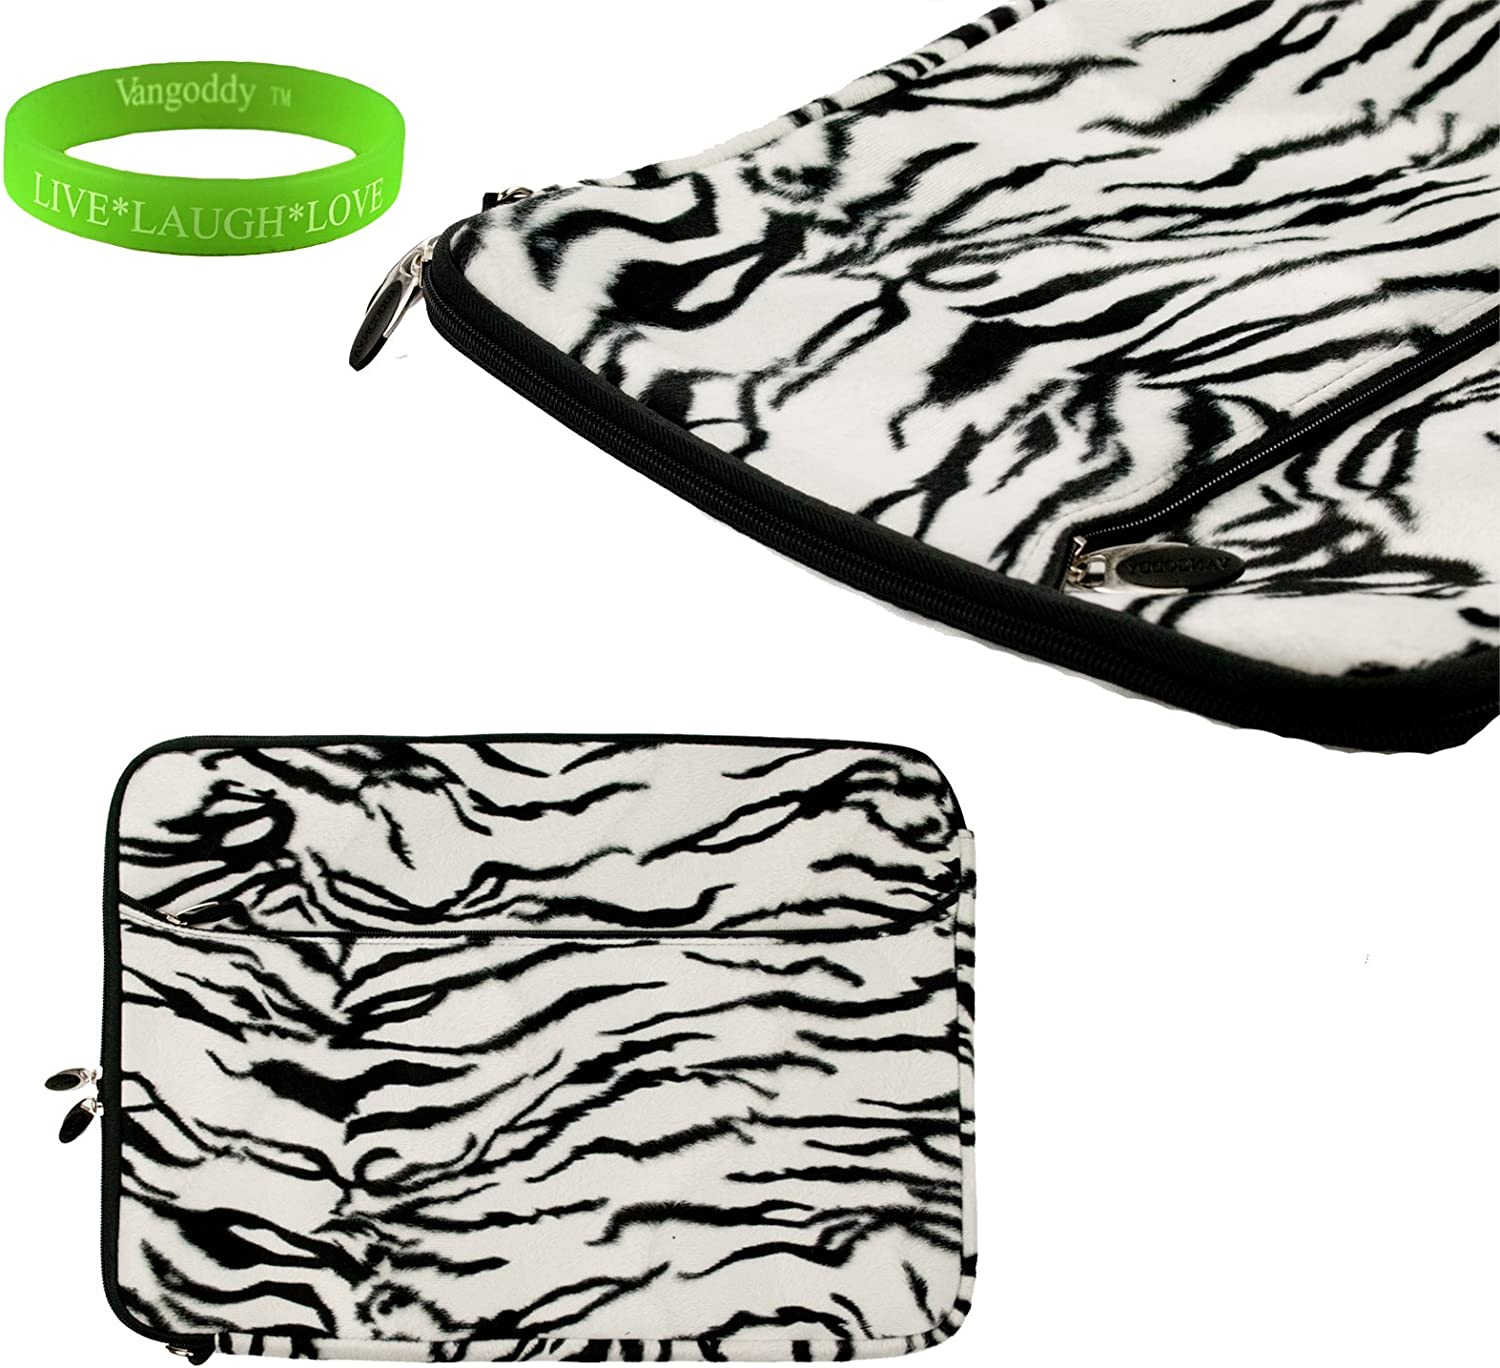 Travel friendly Vintage Black and White Zebra13 inch Faux Fur Laptop Sleeve to fit your Lenovo Yoga Ultrabook. Exterior is lined with Soft Micro suede and a concealed thick nylon flap to keep your device in place + Vangoddy Live Laugh Love Bracelet